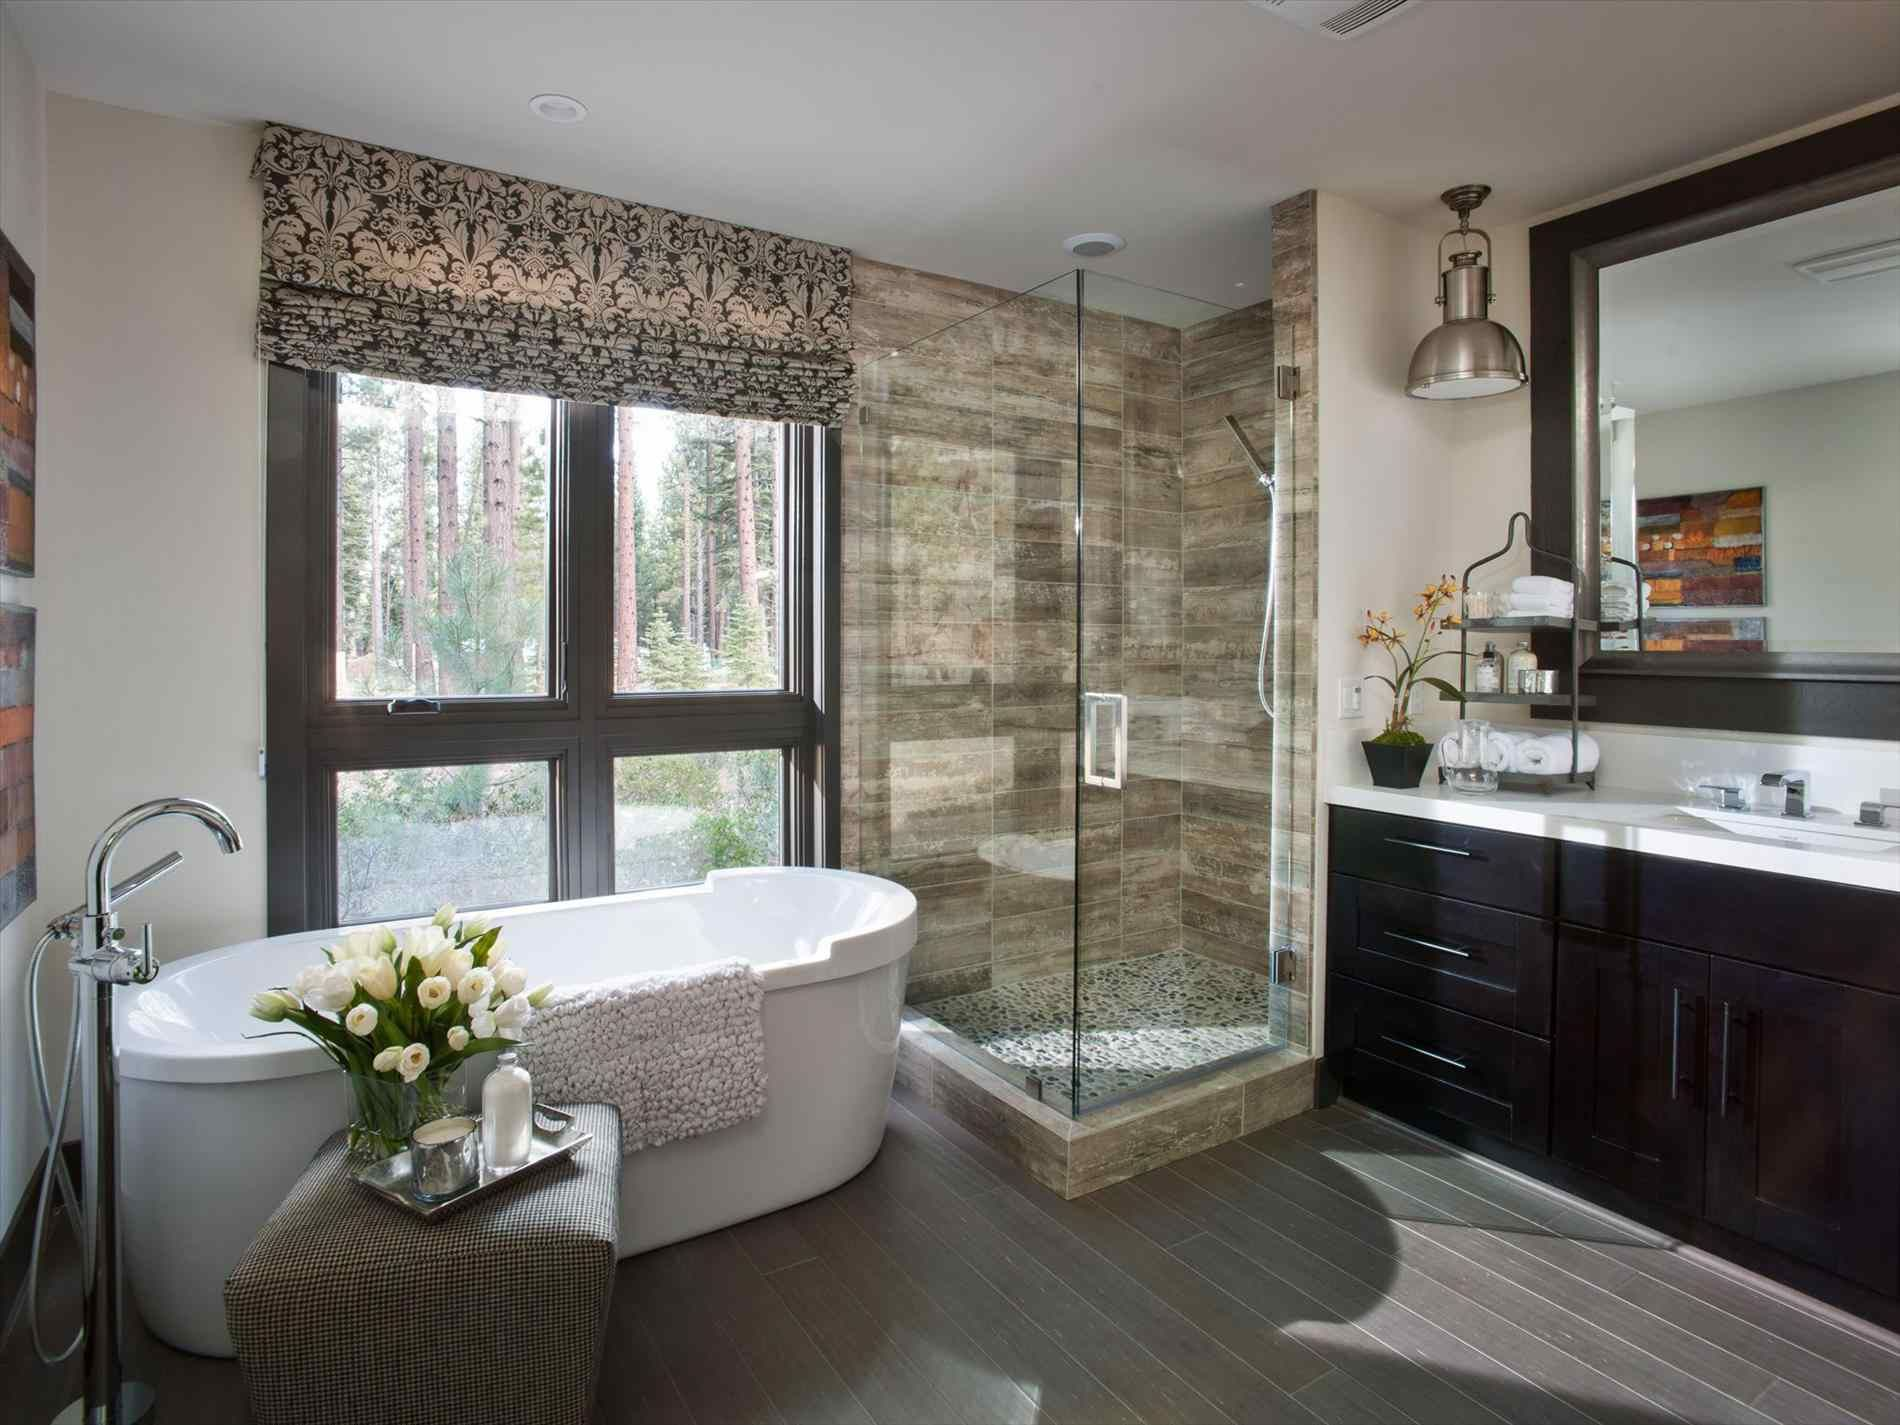 Design proposed square master bathroom layouts floor plan master bath bathroom images plan… | Modern master bathroom, Bathroom design layout, Master bathroom layout